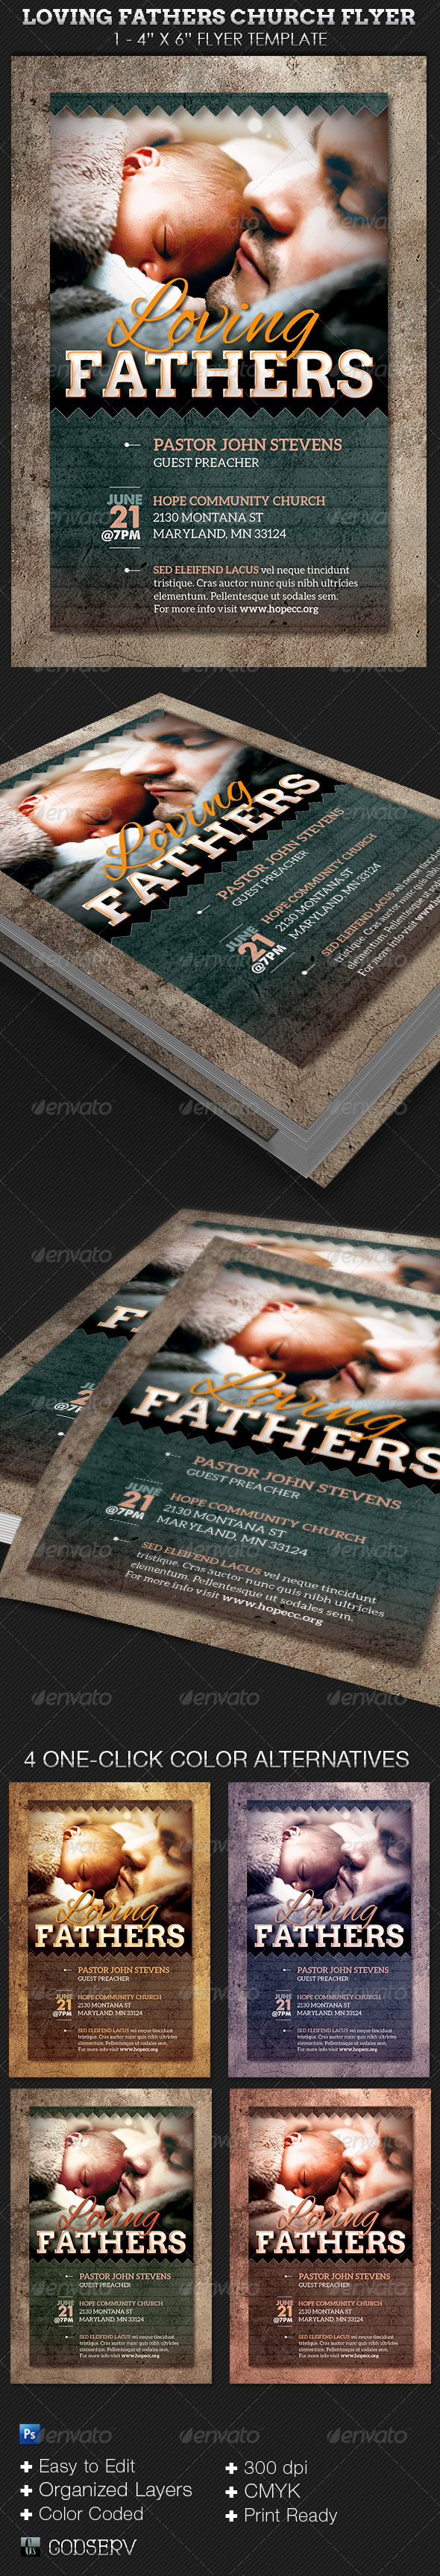 Loving Fathers Church Flyer Template - Church Flyers